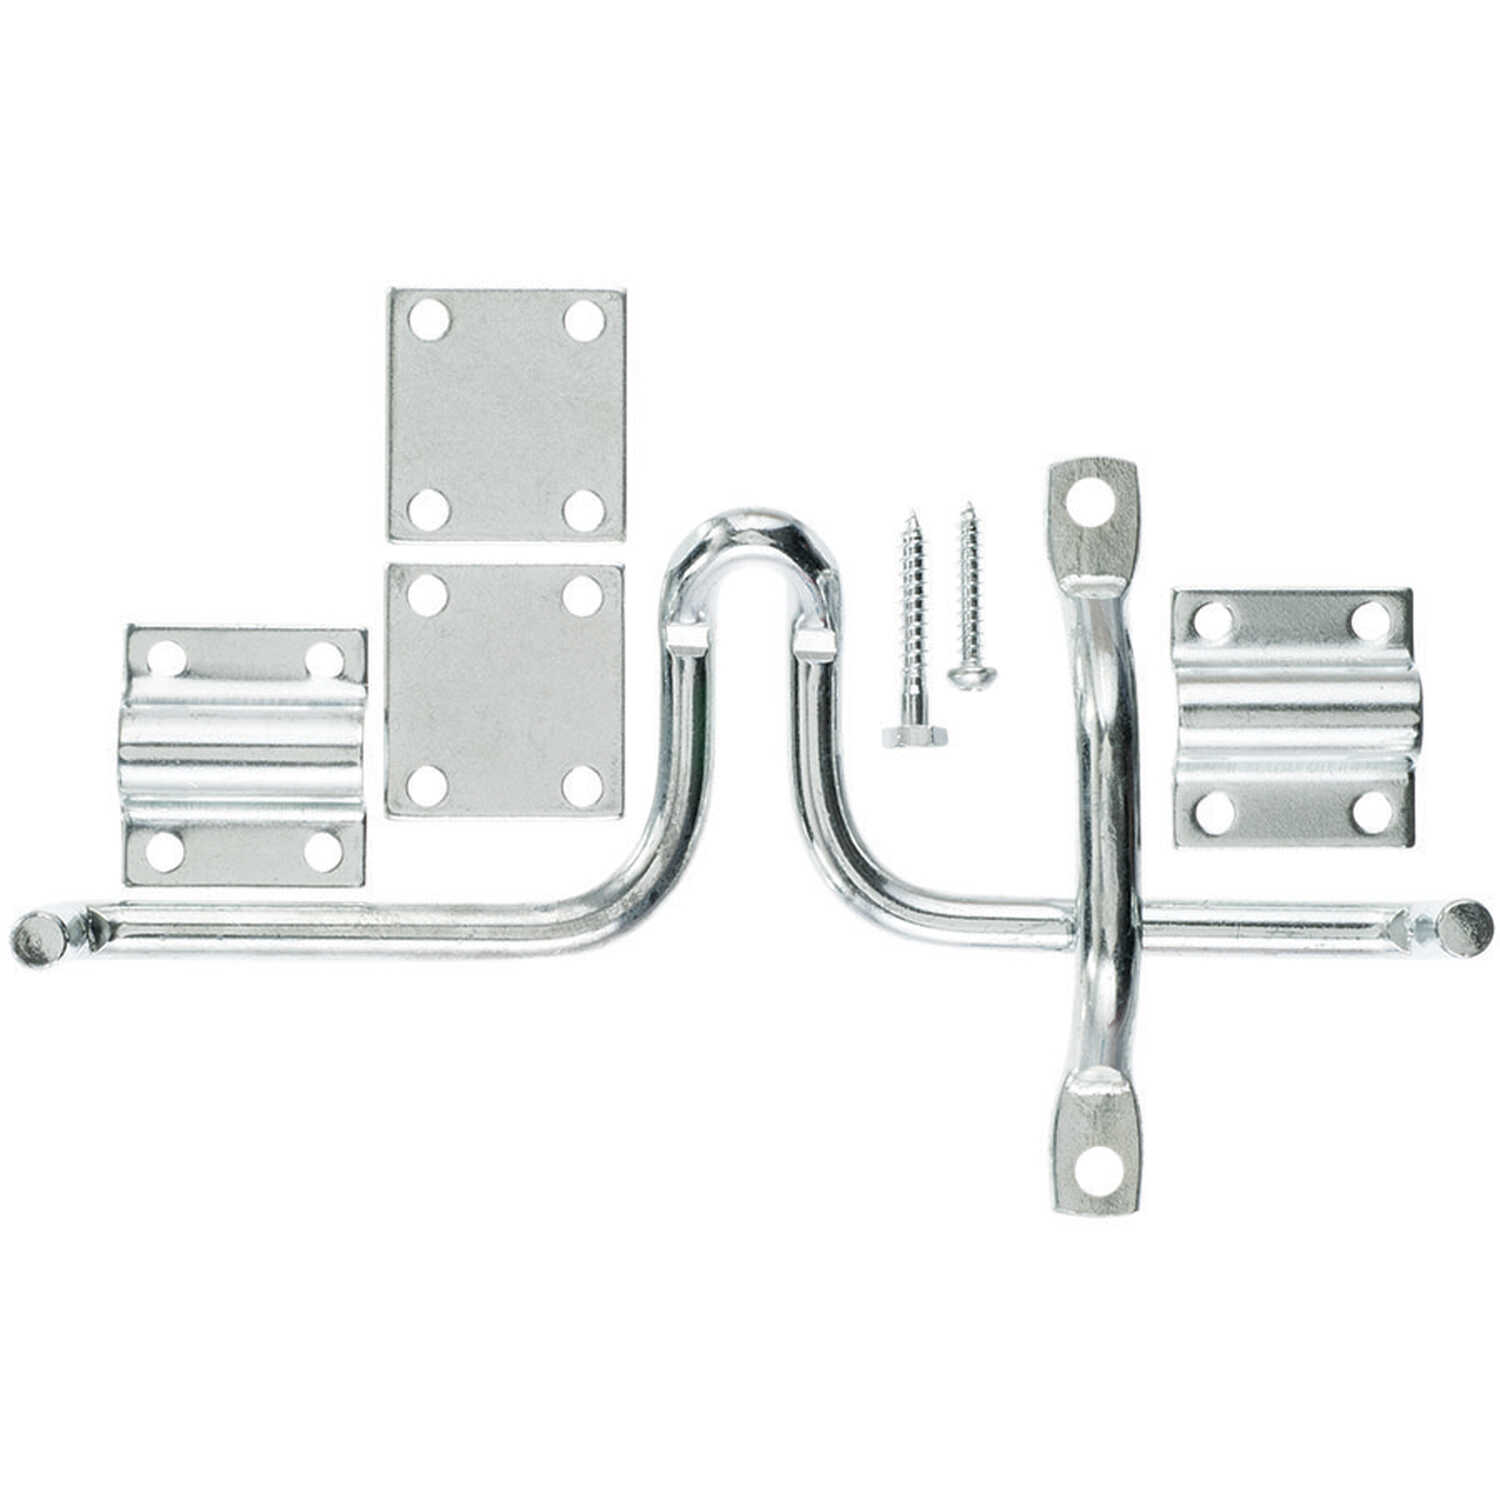 Ace  13.52 in. H x 4.75 in. W x 1.7 in. L Zinc-Plated  Metallic  Zinc  Slide Bolt Gate Latch